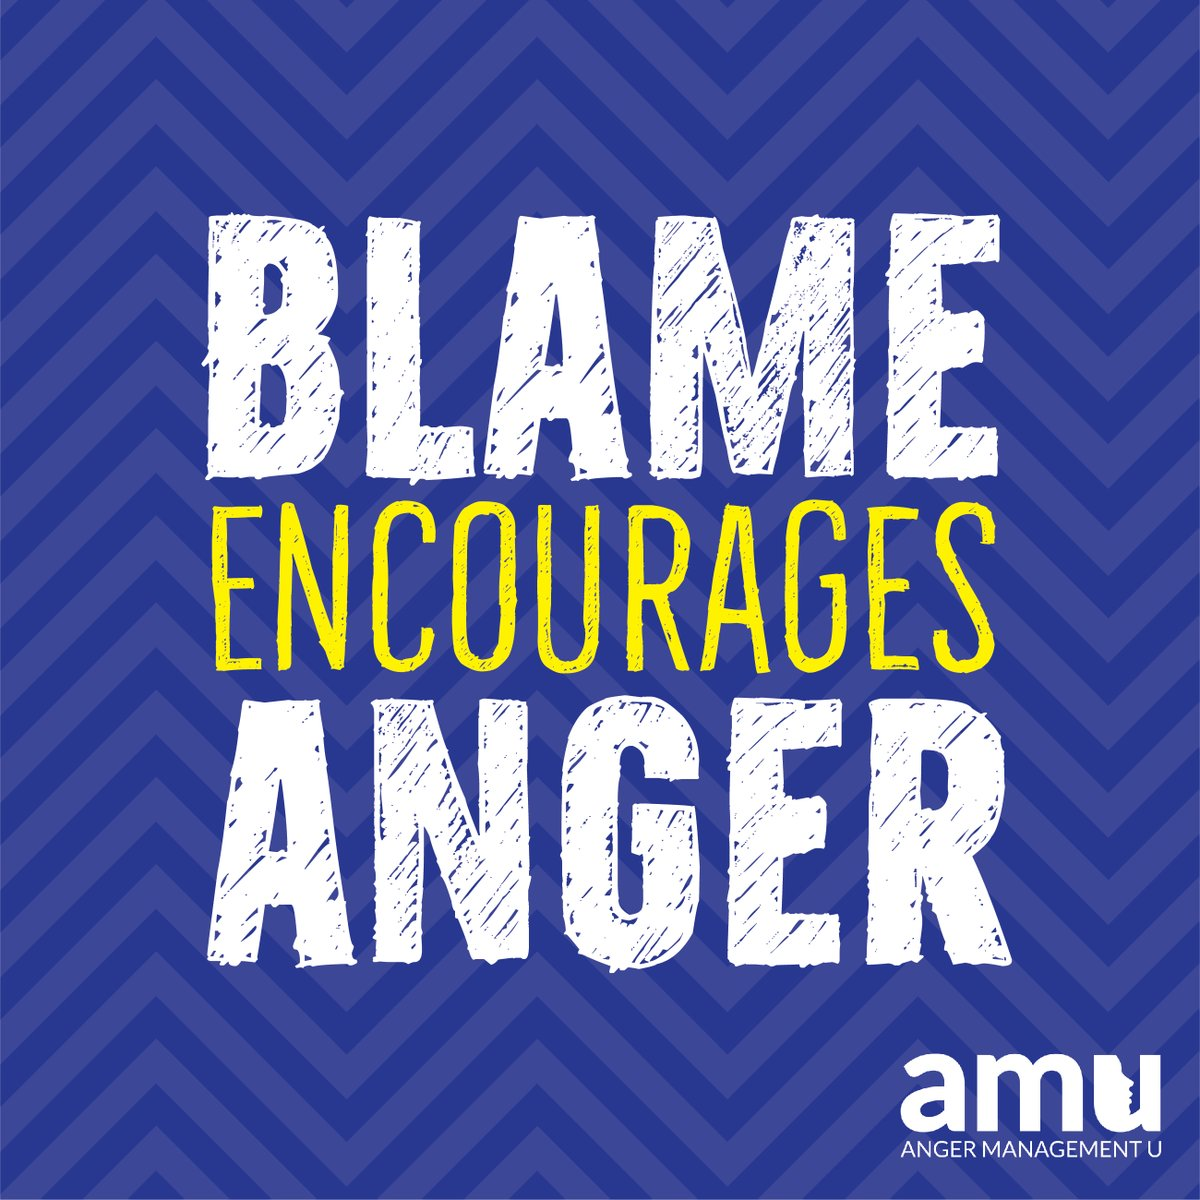 Did you know that #blame is one of the first signs of #anger? Blaming creates emotional distance between you and others, making it easier to get angry. Instead of blame, try taking responsibility and focusing on what you can control. #yougotthis https://t.co/DmhqjaINOW